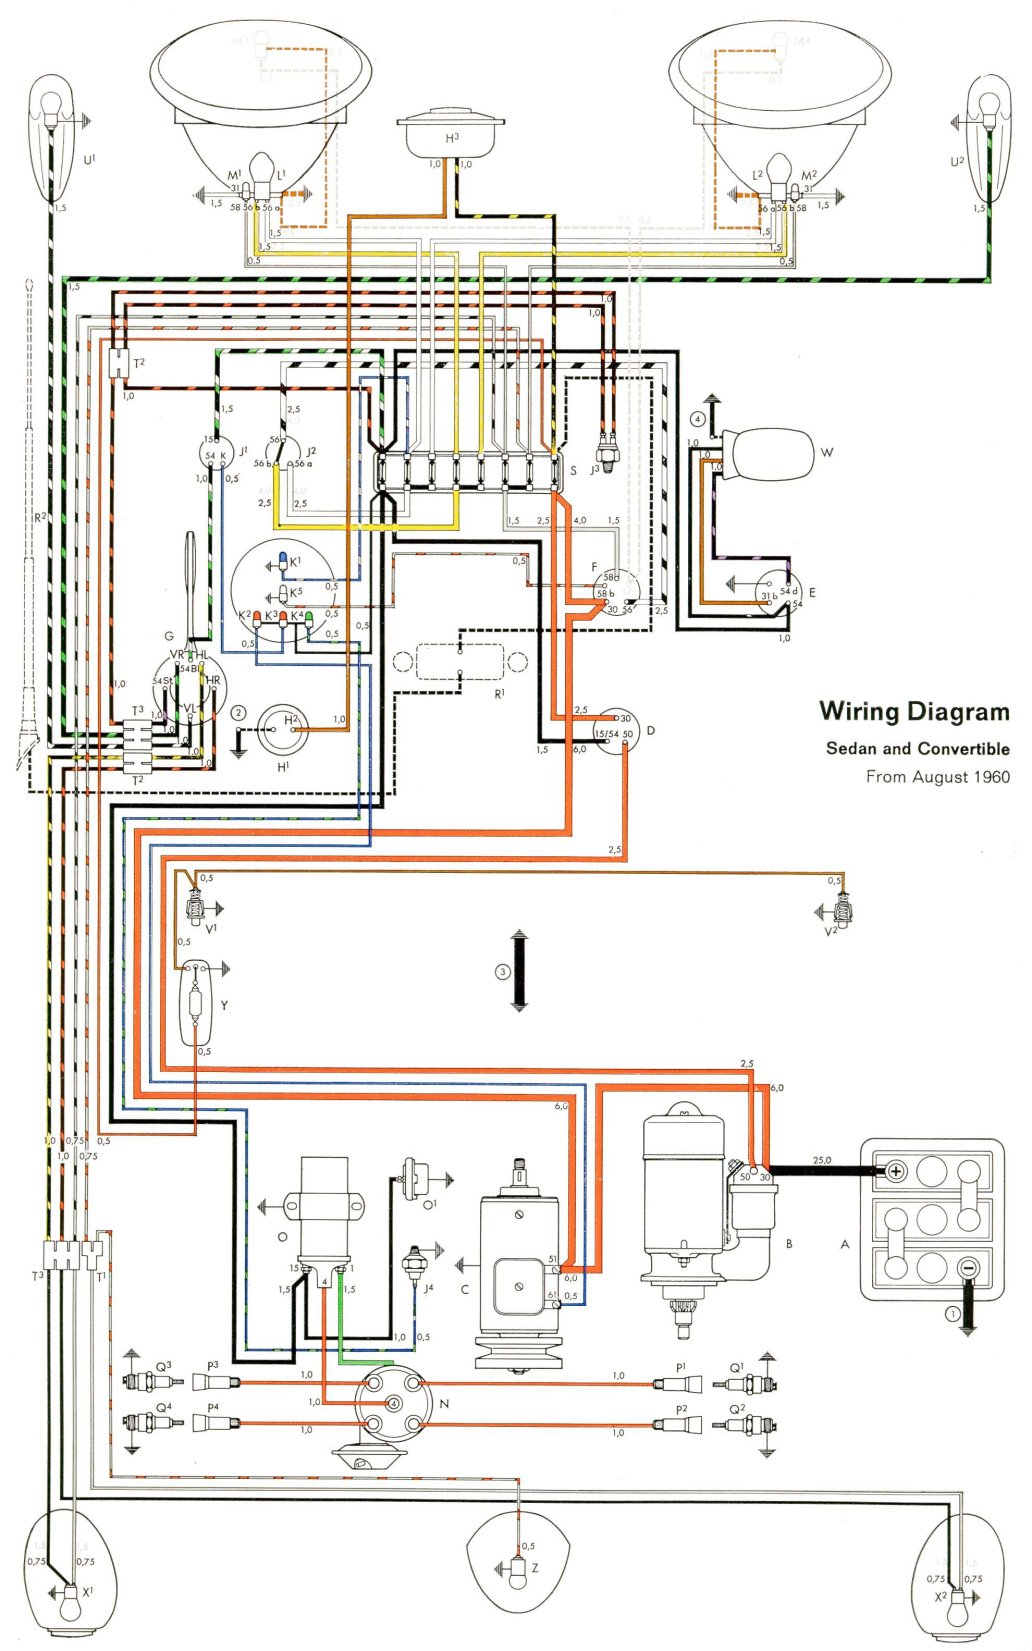 bug_61 1961 beetle wiring diagram thegoldenbug com 76 vw beetle wiring diagram at edmiracle.co